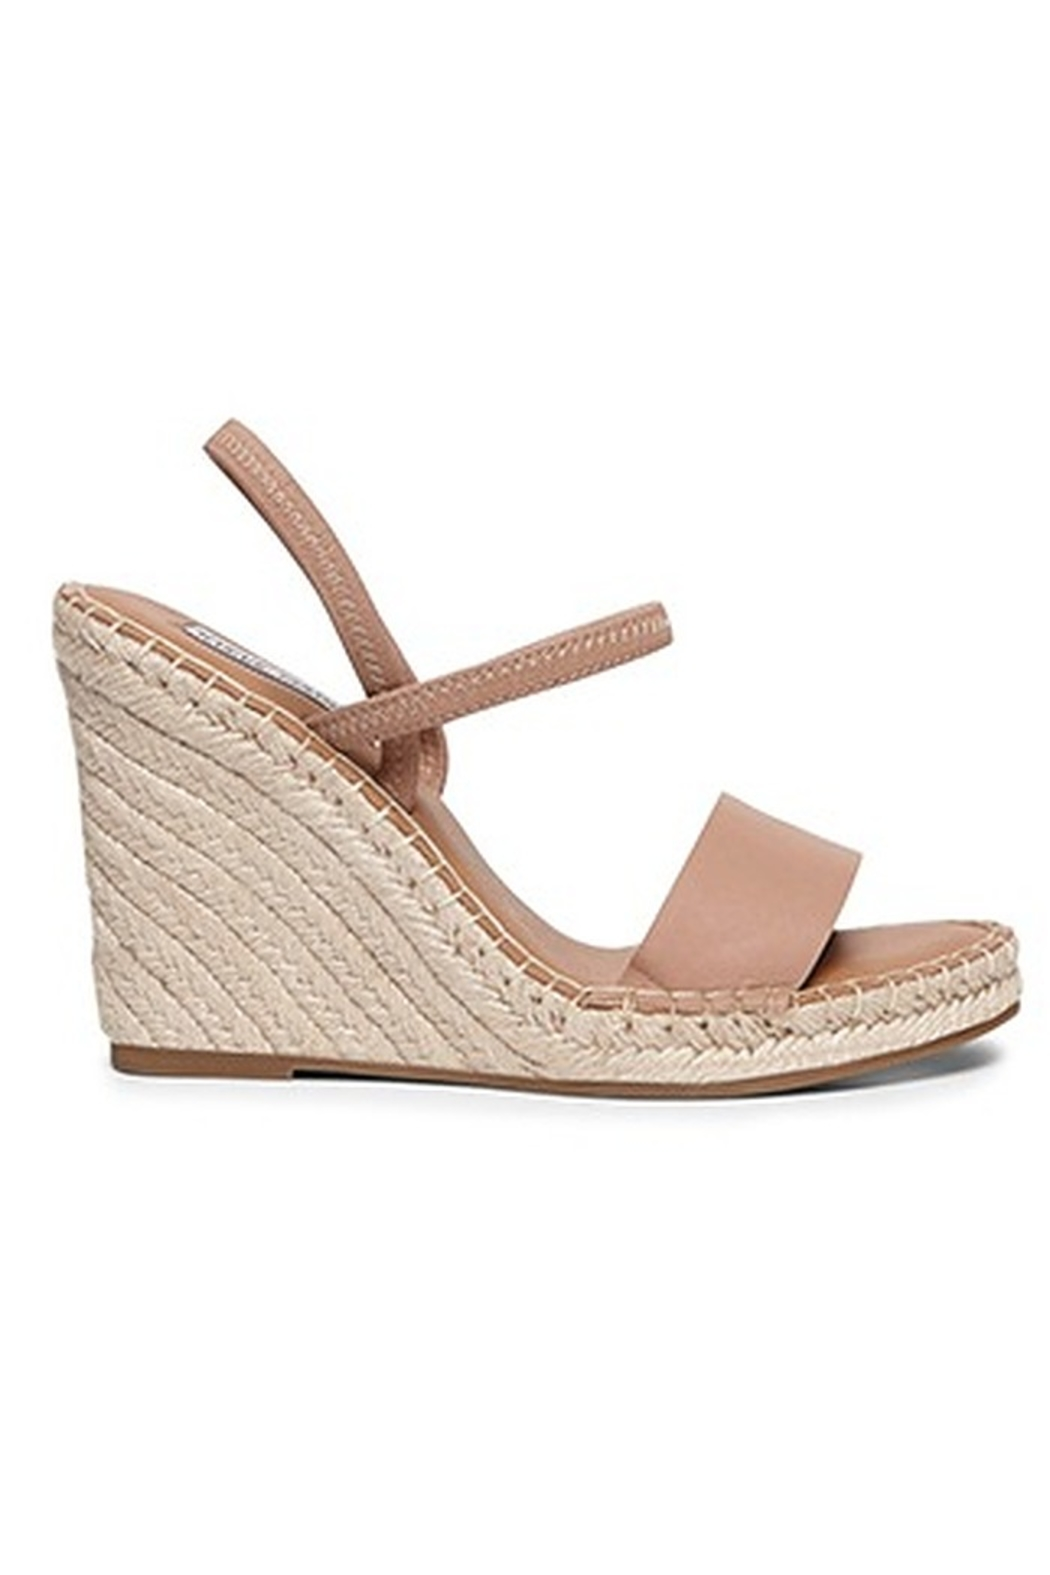 Steve Madden Shoes Mckenzie Wedge - Front Cropped Image